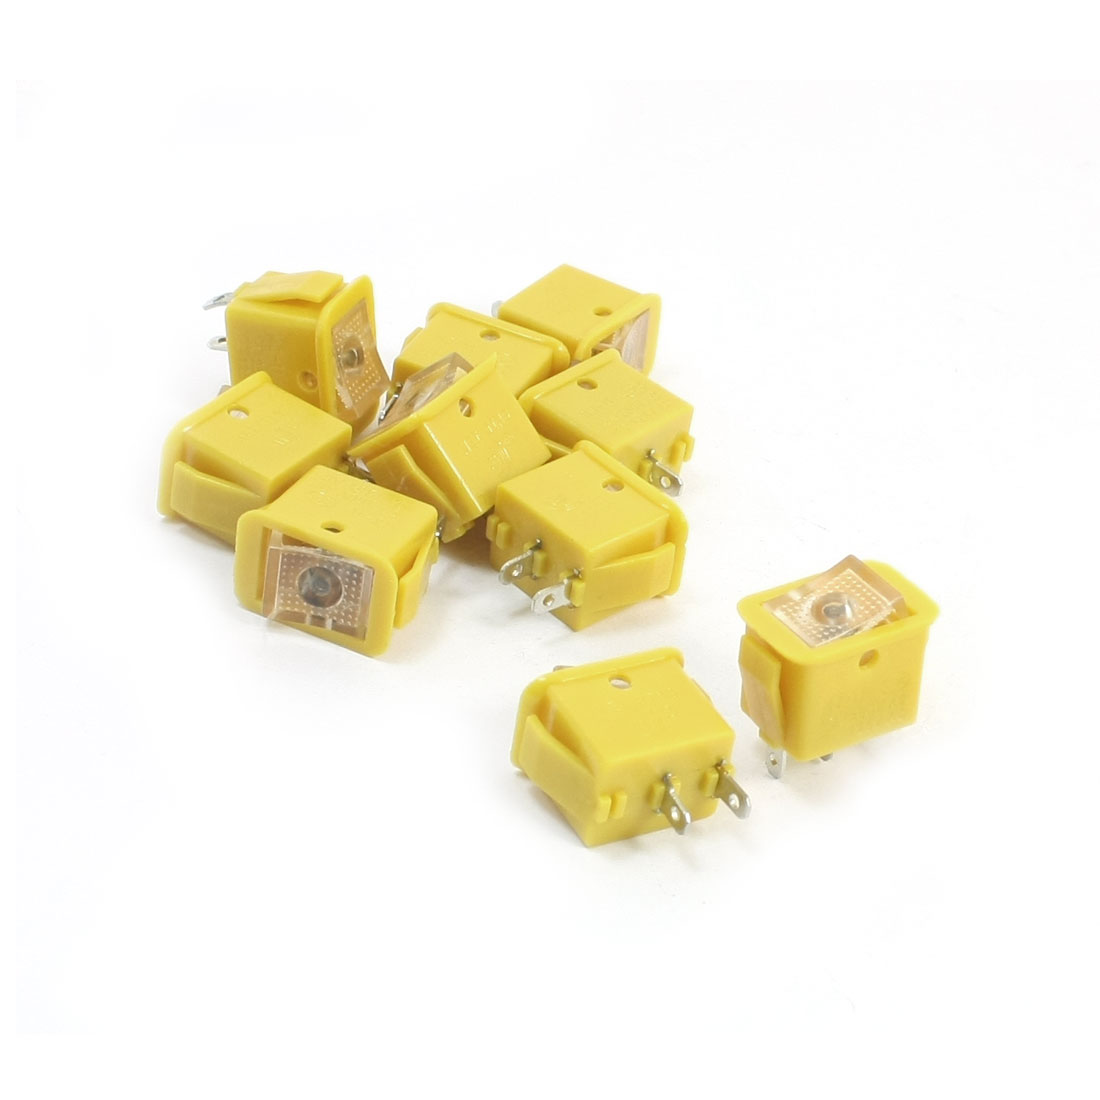 10pcs Yellow Locking SPST 2 Positions Rocker Switch AC250V/10A 125V/13A